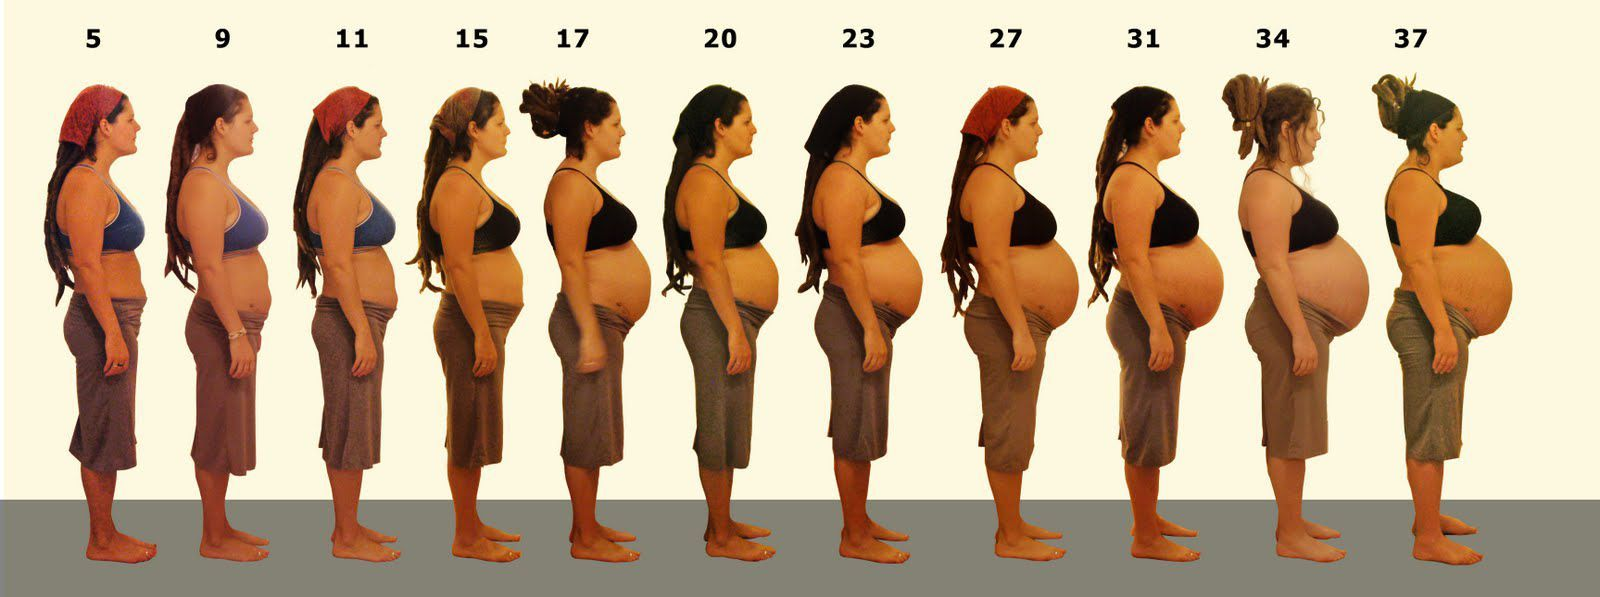 body changes during pregnancy week by week photos - Google Search